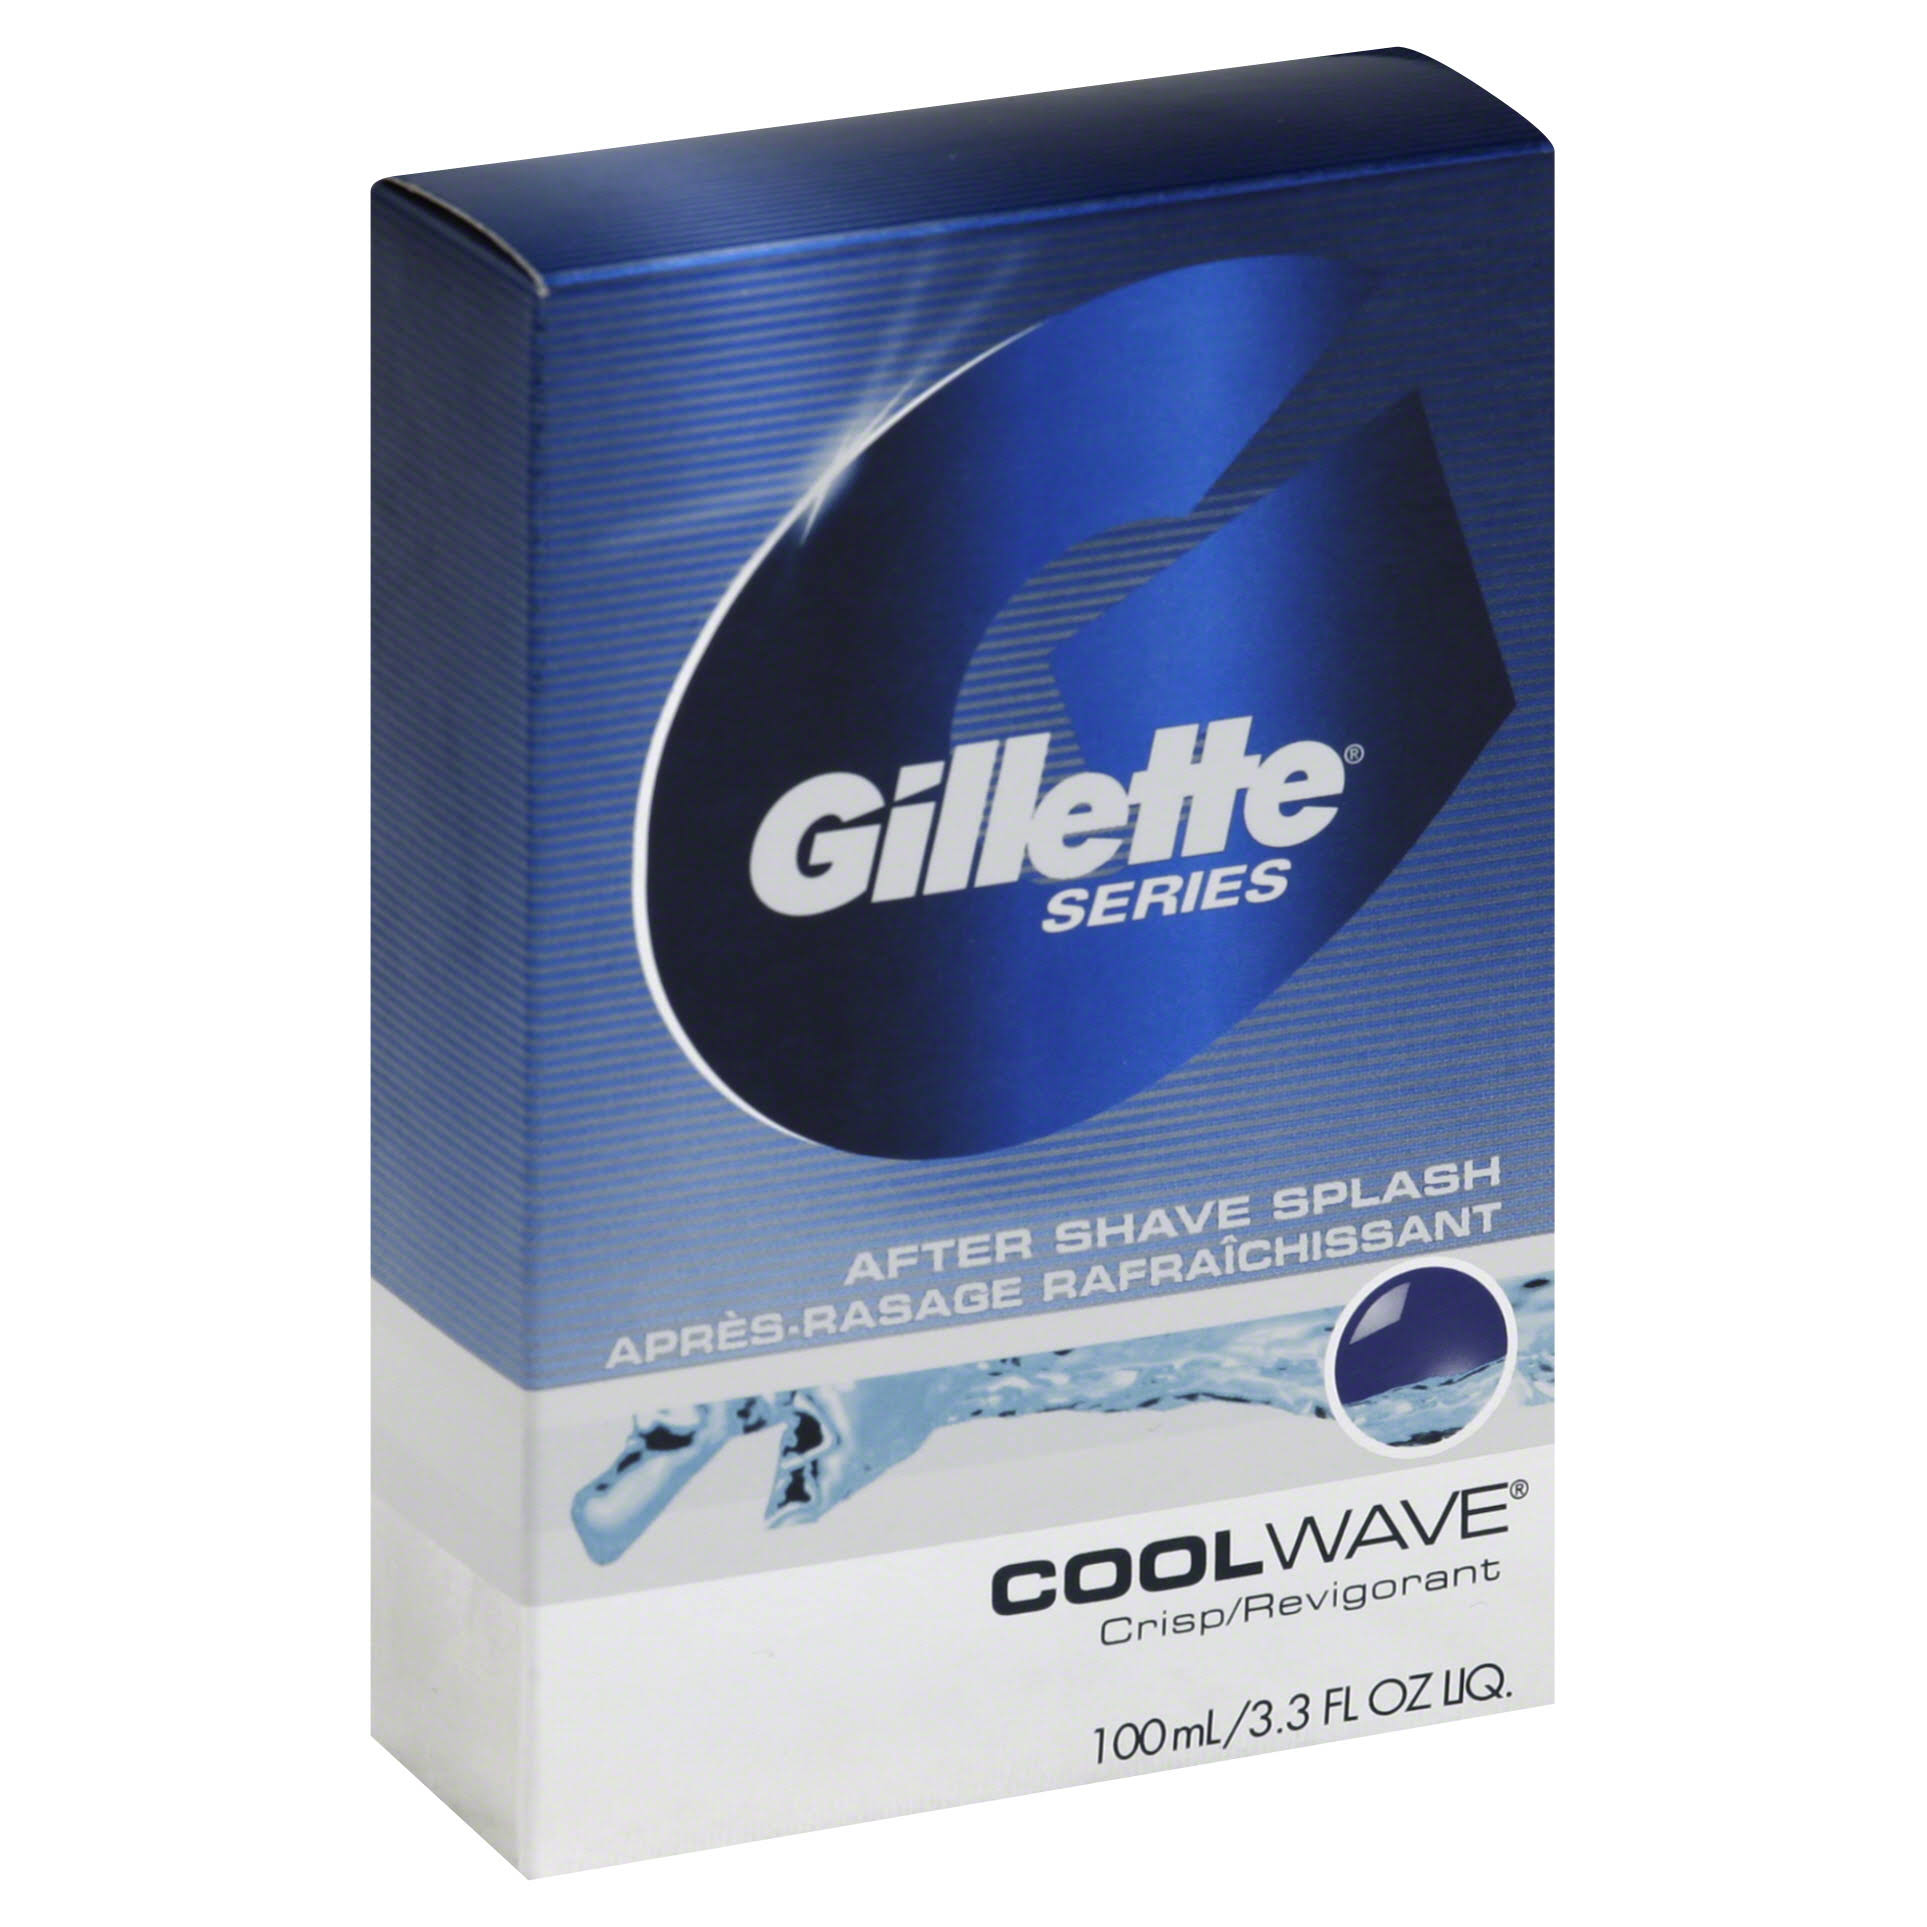 Gillette Series Cool Wave Crisp After Shave Splash - 3.3oz